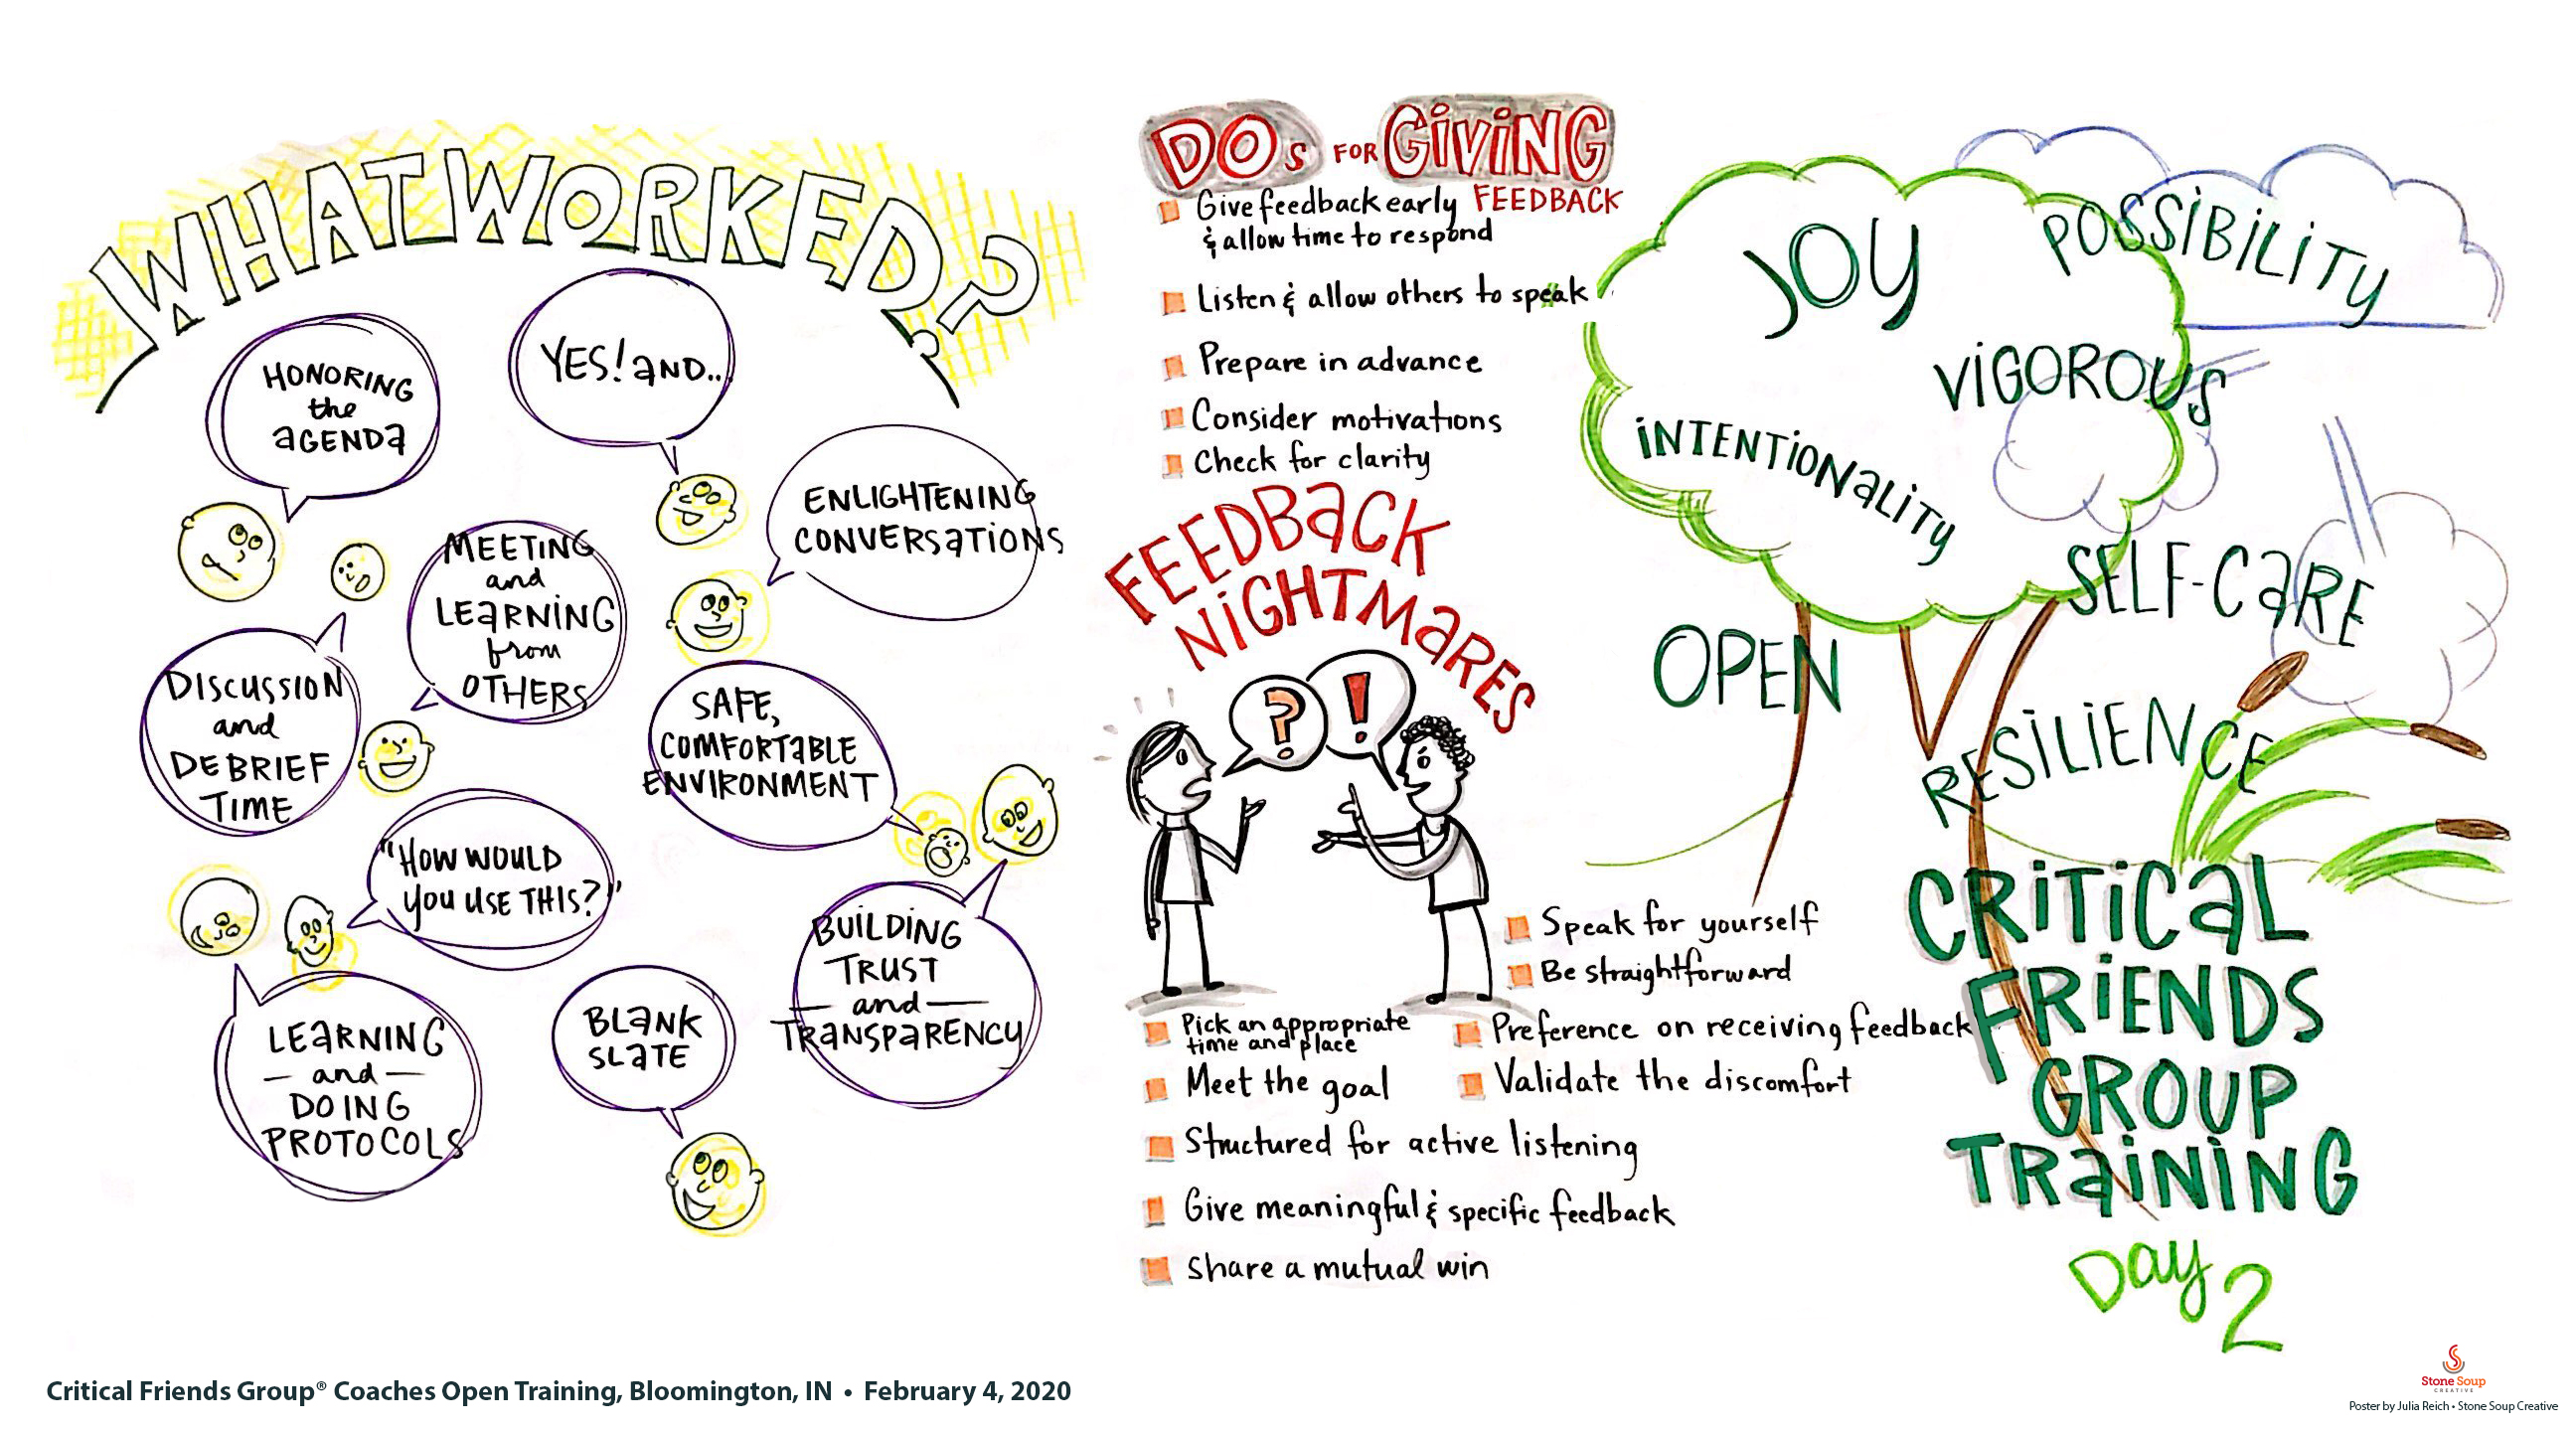 National School Reform Faculty Critical Friends Group training graphic recording